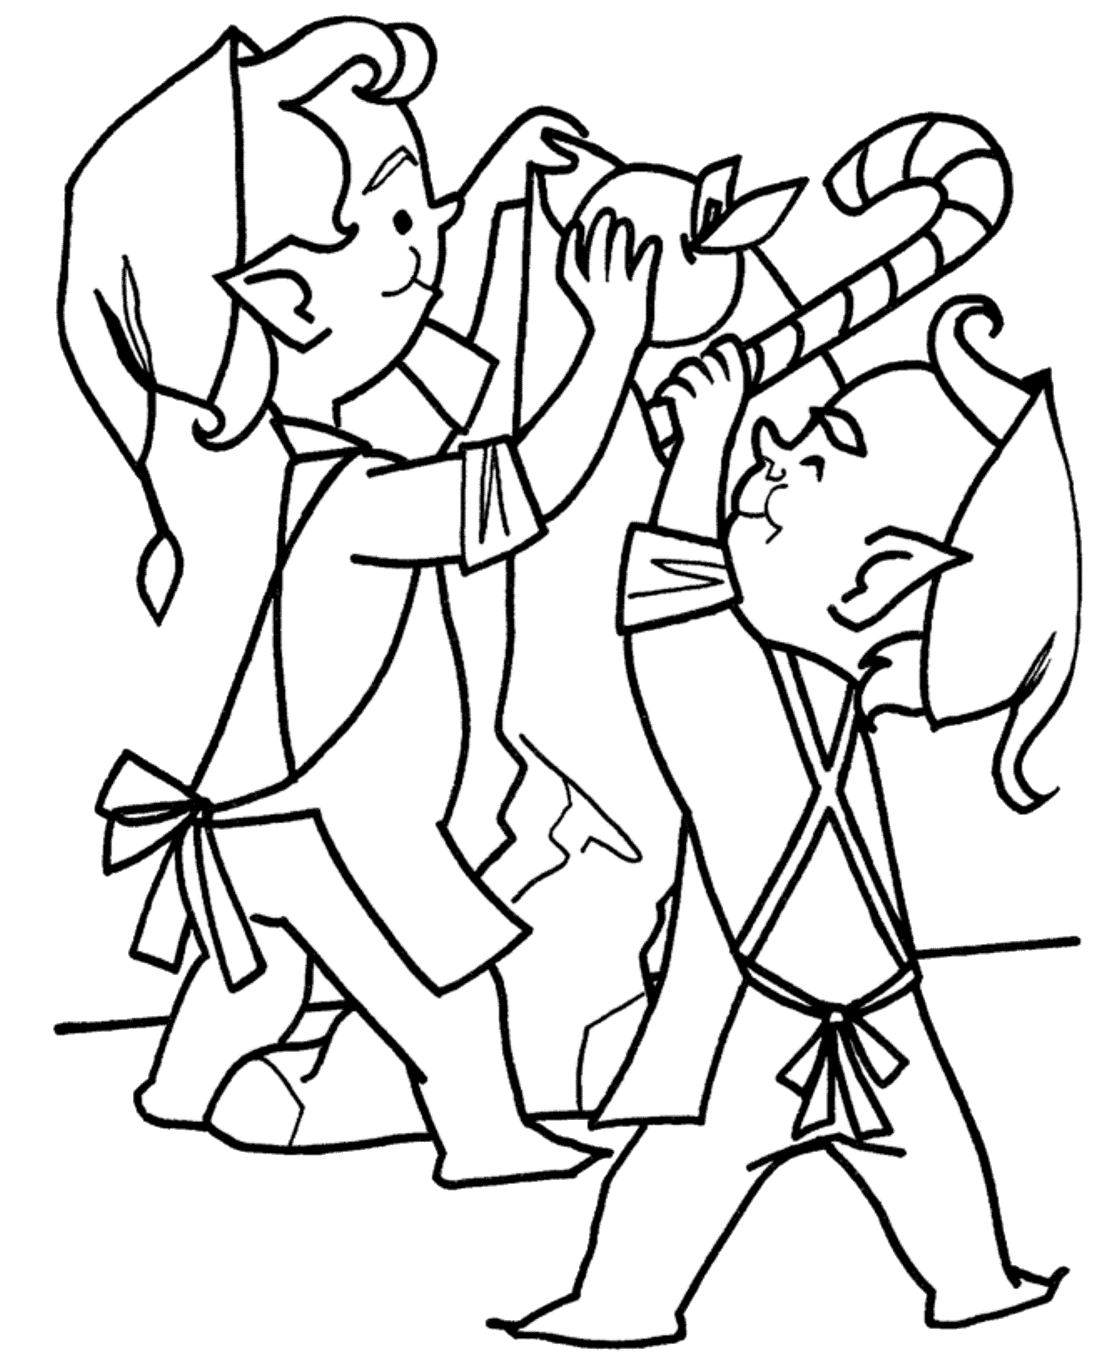 Elves To Insert Food Into The Sack Coloring Pages For Kids Ctr Printable Elves Coloring Pages For Santa Coloring Pages Mermaid Coloring Pages Coloring Pages